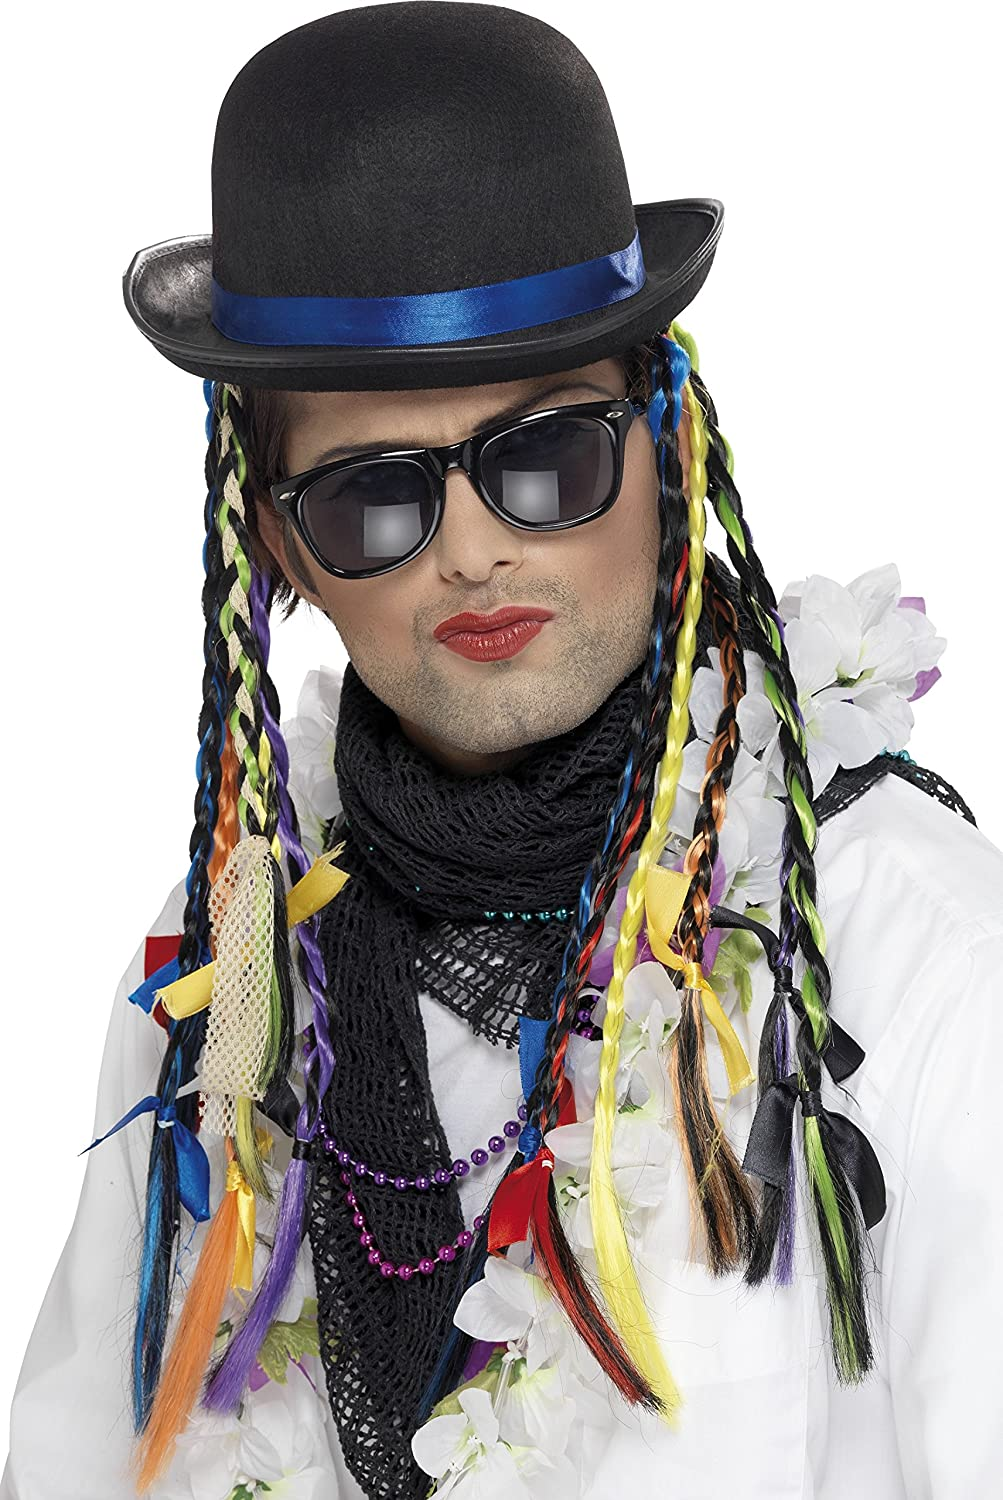 Smiffy's Chameleon Hat. Create an instant Boy George look! Hat includes multi-coloured plaits.